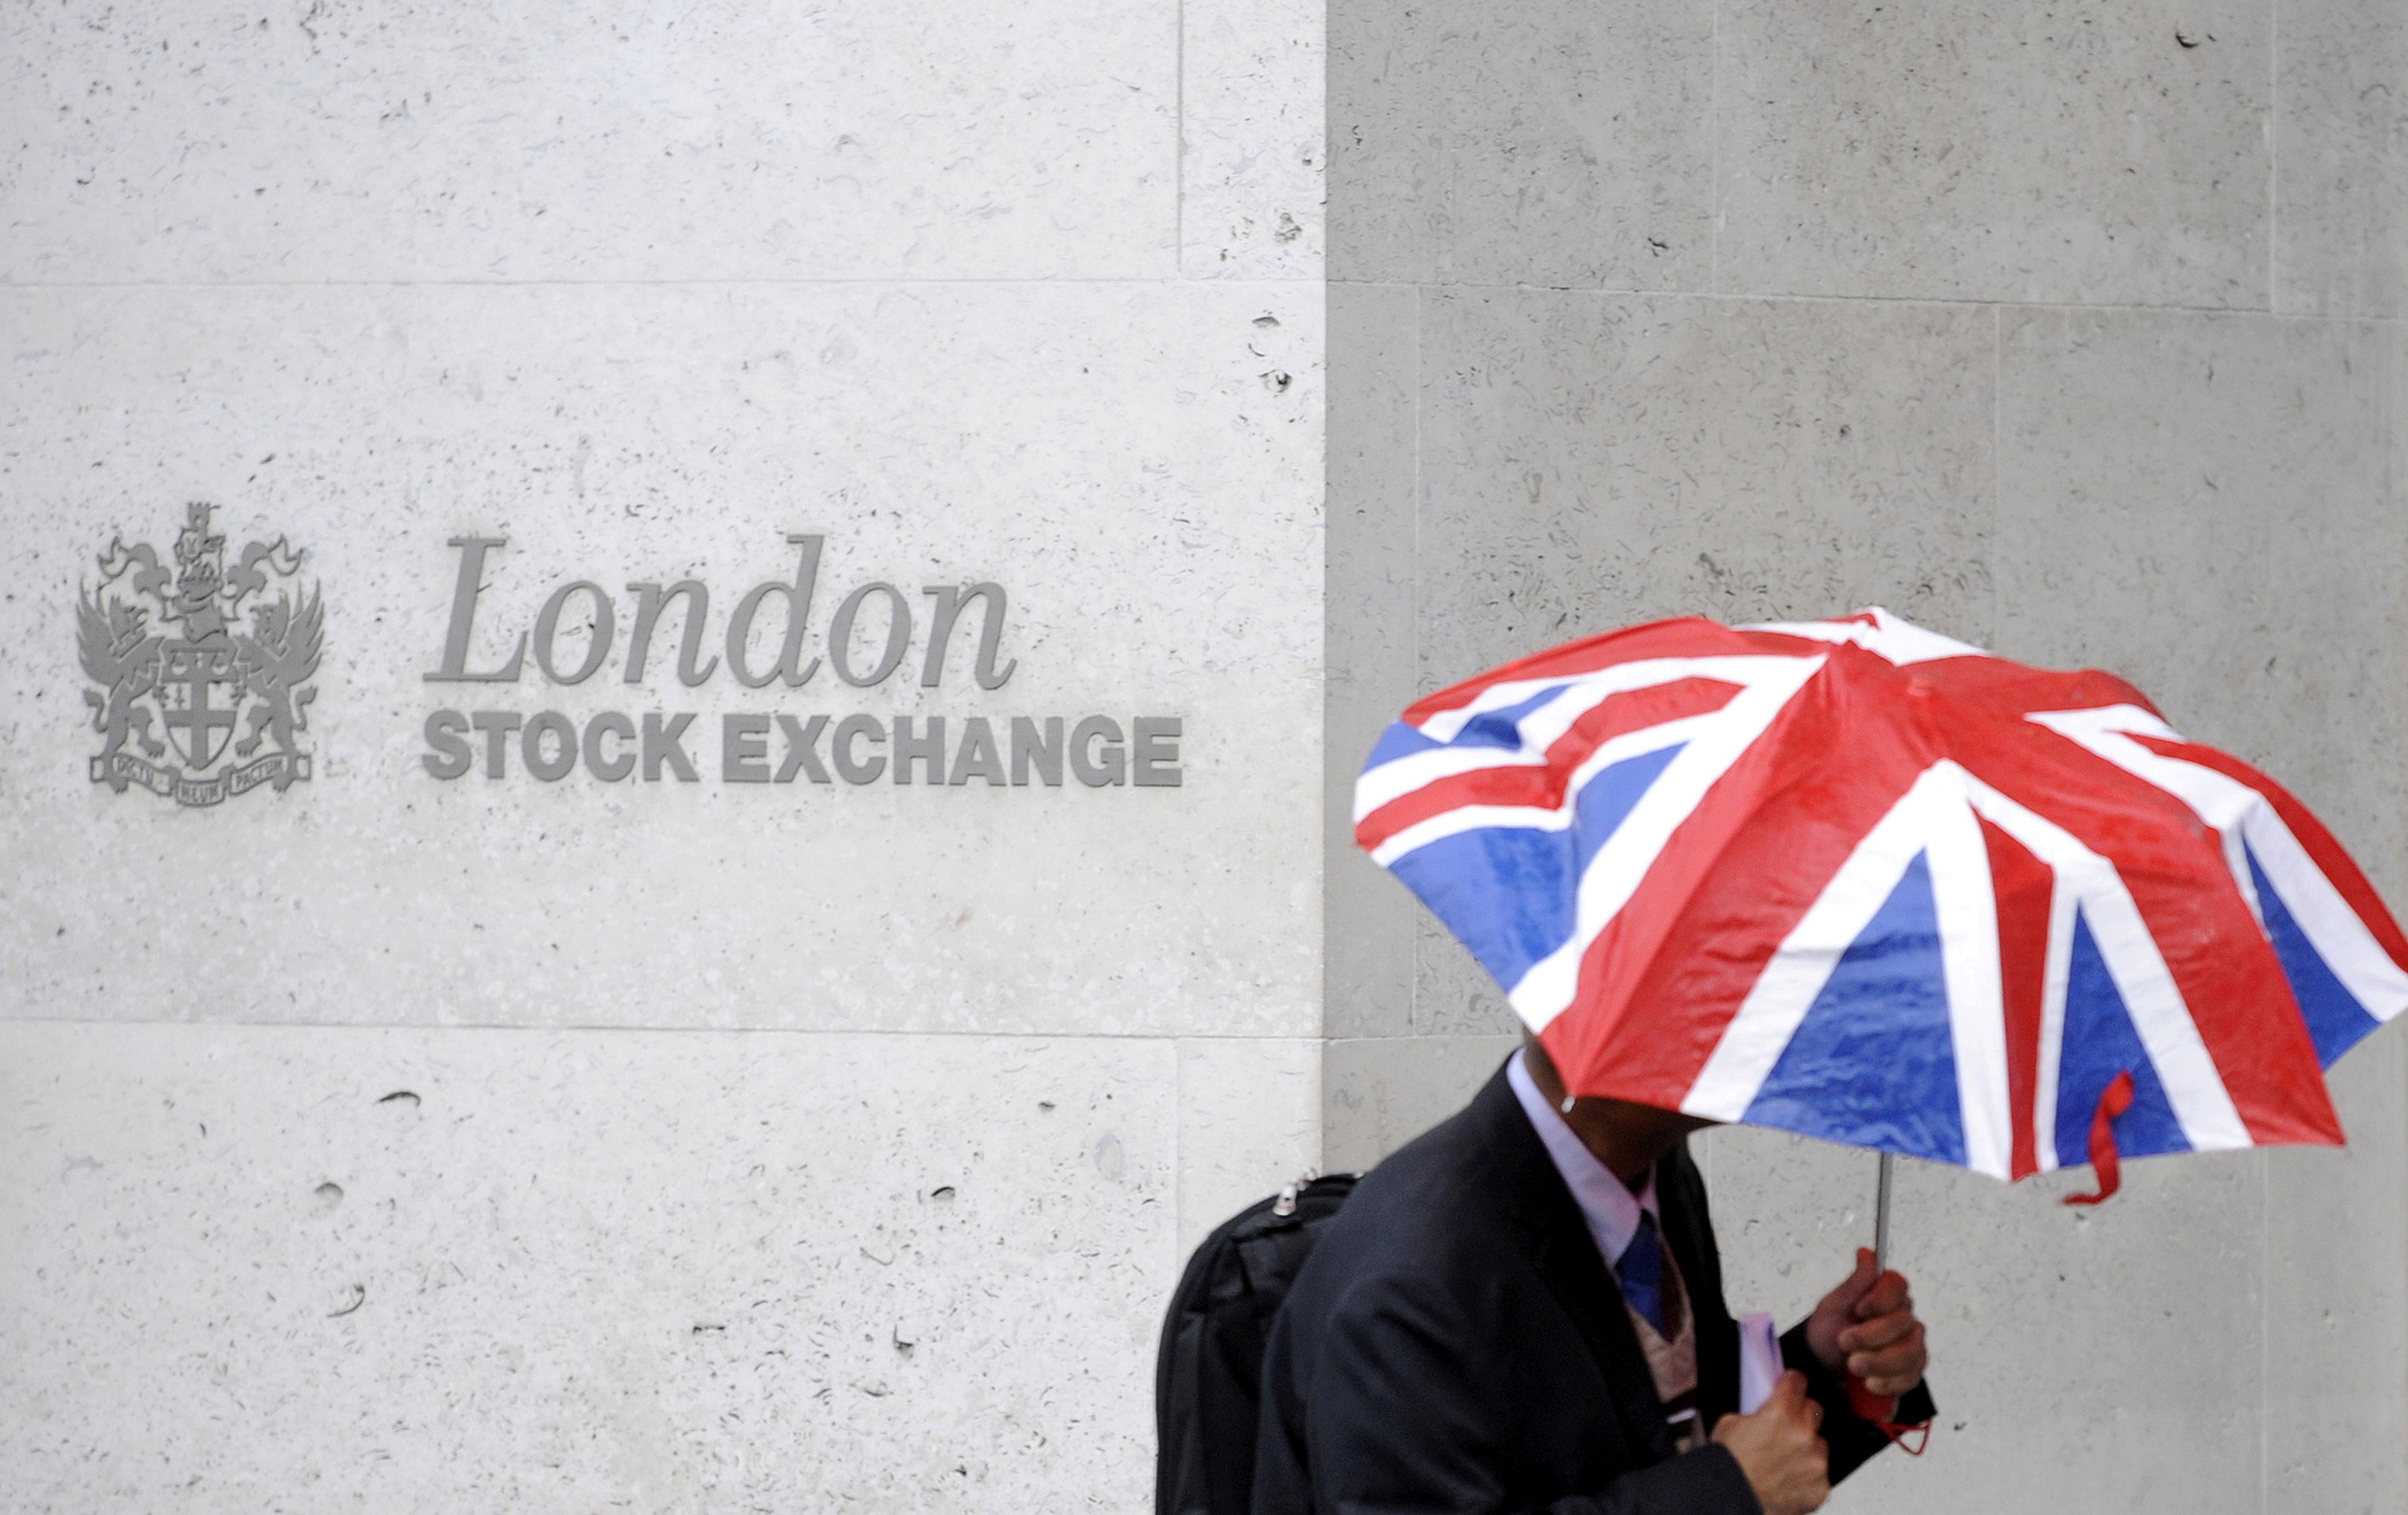 A worker shelters from the rain under a Union Flag umbrella as he passes the London Stock Exchange in London, Britain, October 1, 2008.  REUTERS/Toby Melville